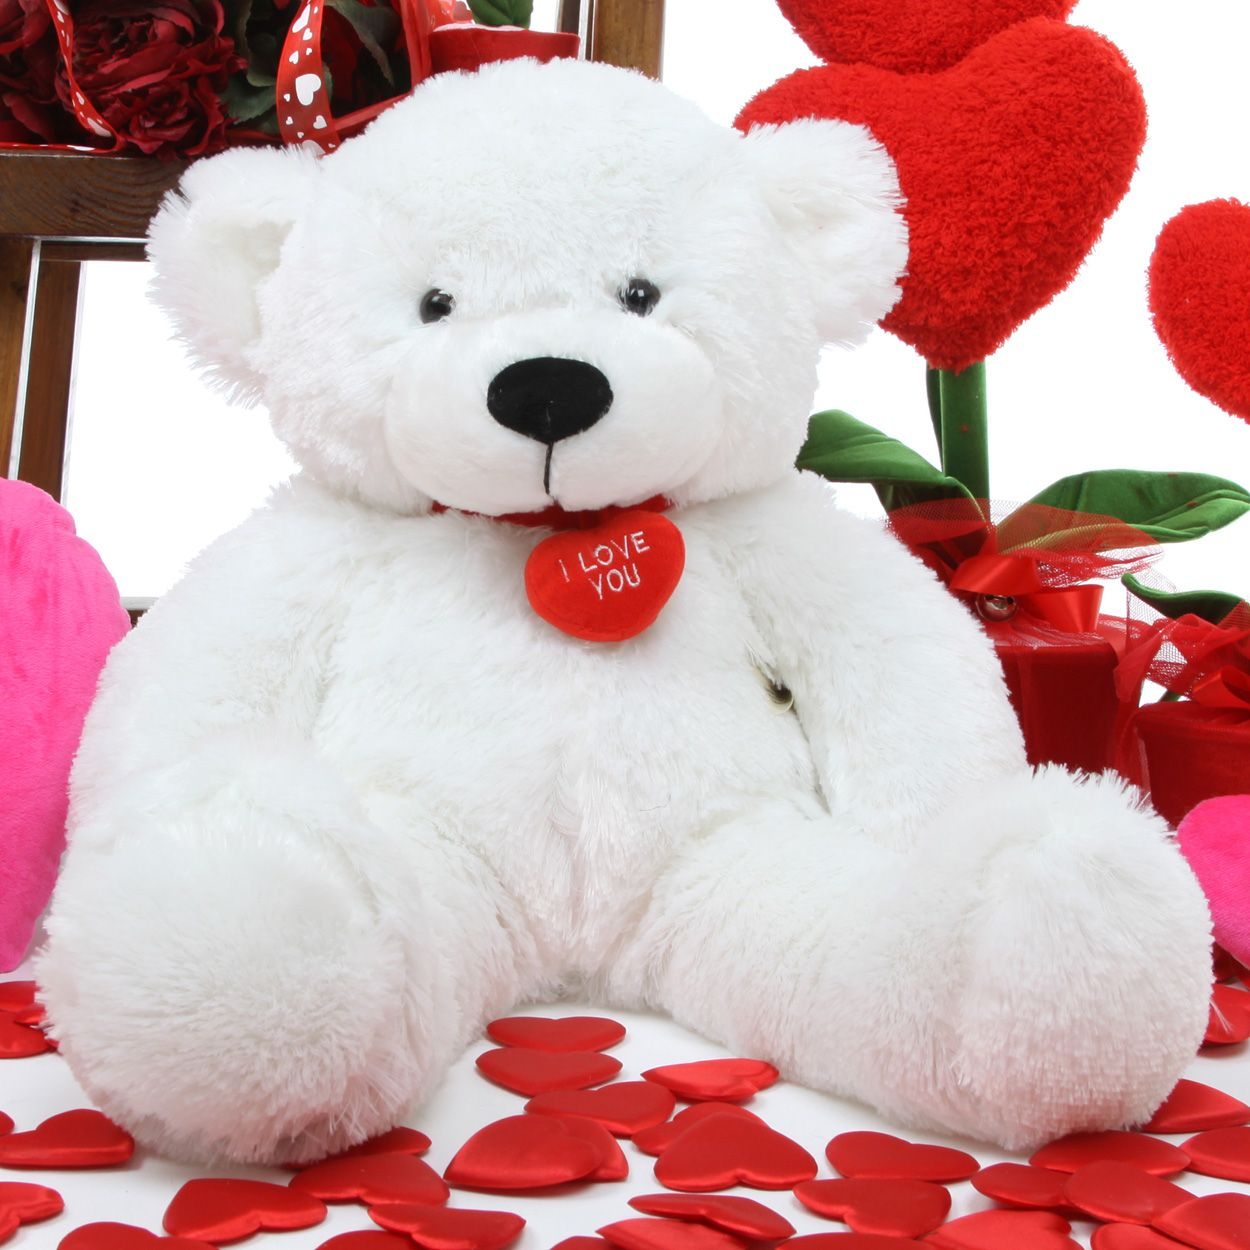 hd for mobile_cute-teddy-bear-and-love-wallpapers-download-for-mobile Hd Wallpaper Full ...